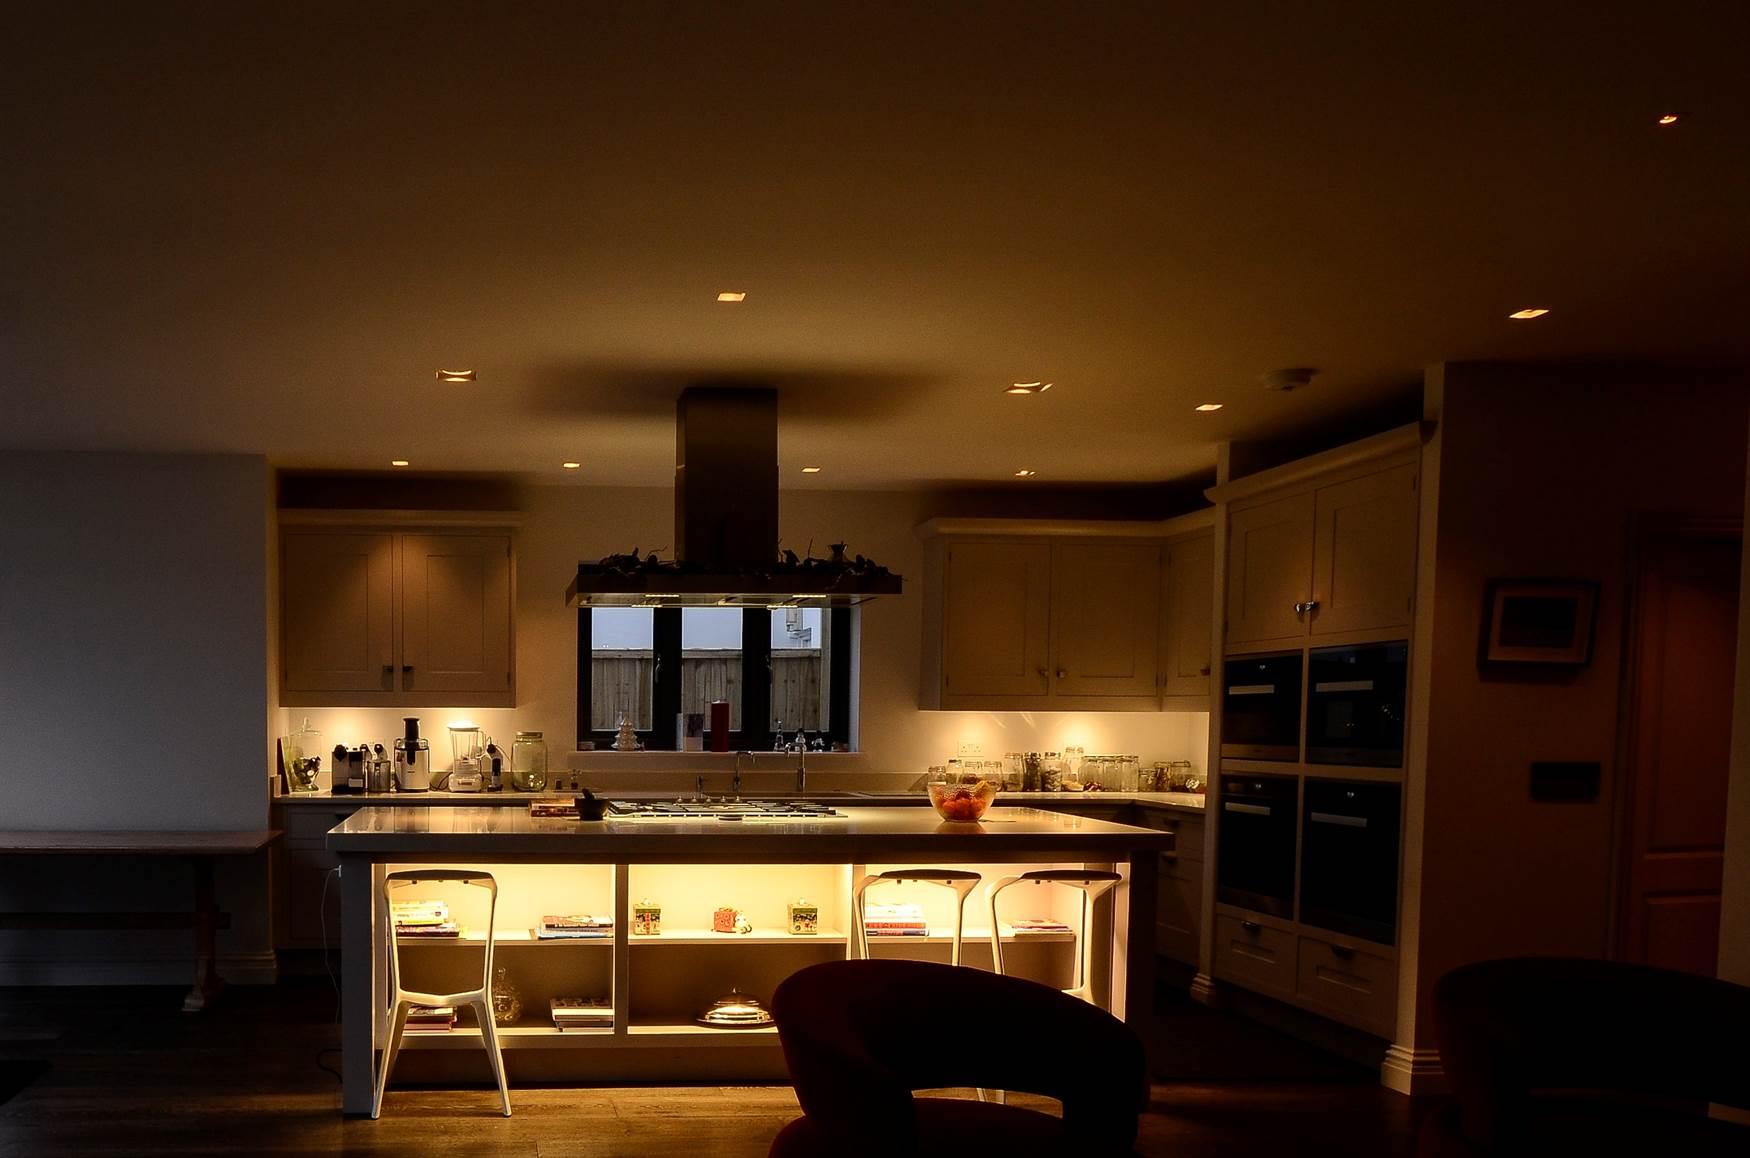 Lighting scene setting controlled by Lutron system